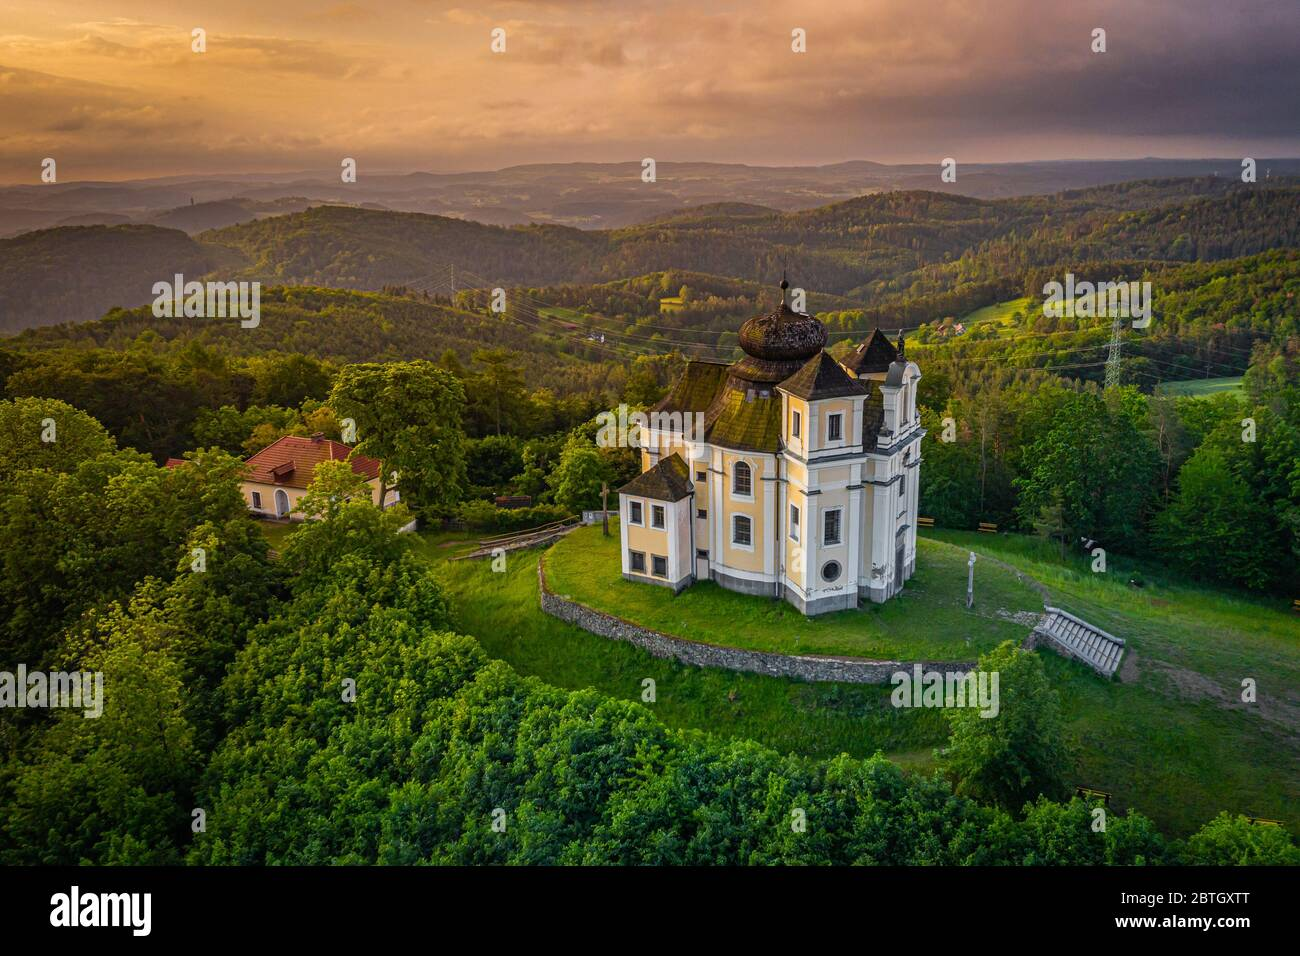 Poppy Mountain is a peak in the Benesov Hills and an important place of pilgrimage. Baroque church of St. John the Baptist and the Virgin Mary. Stock Photo